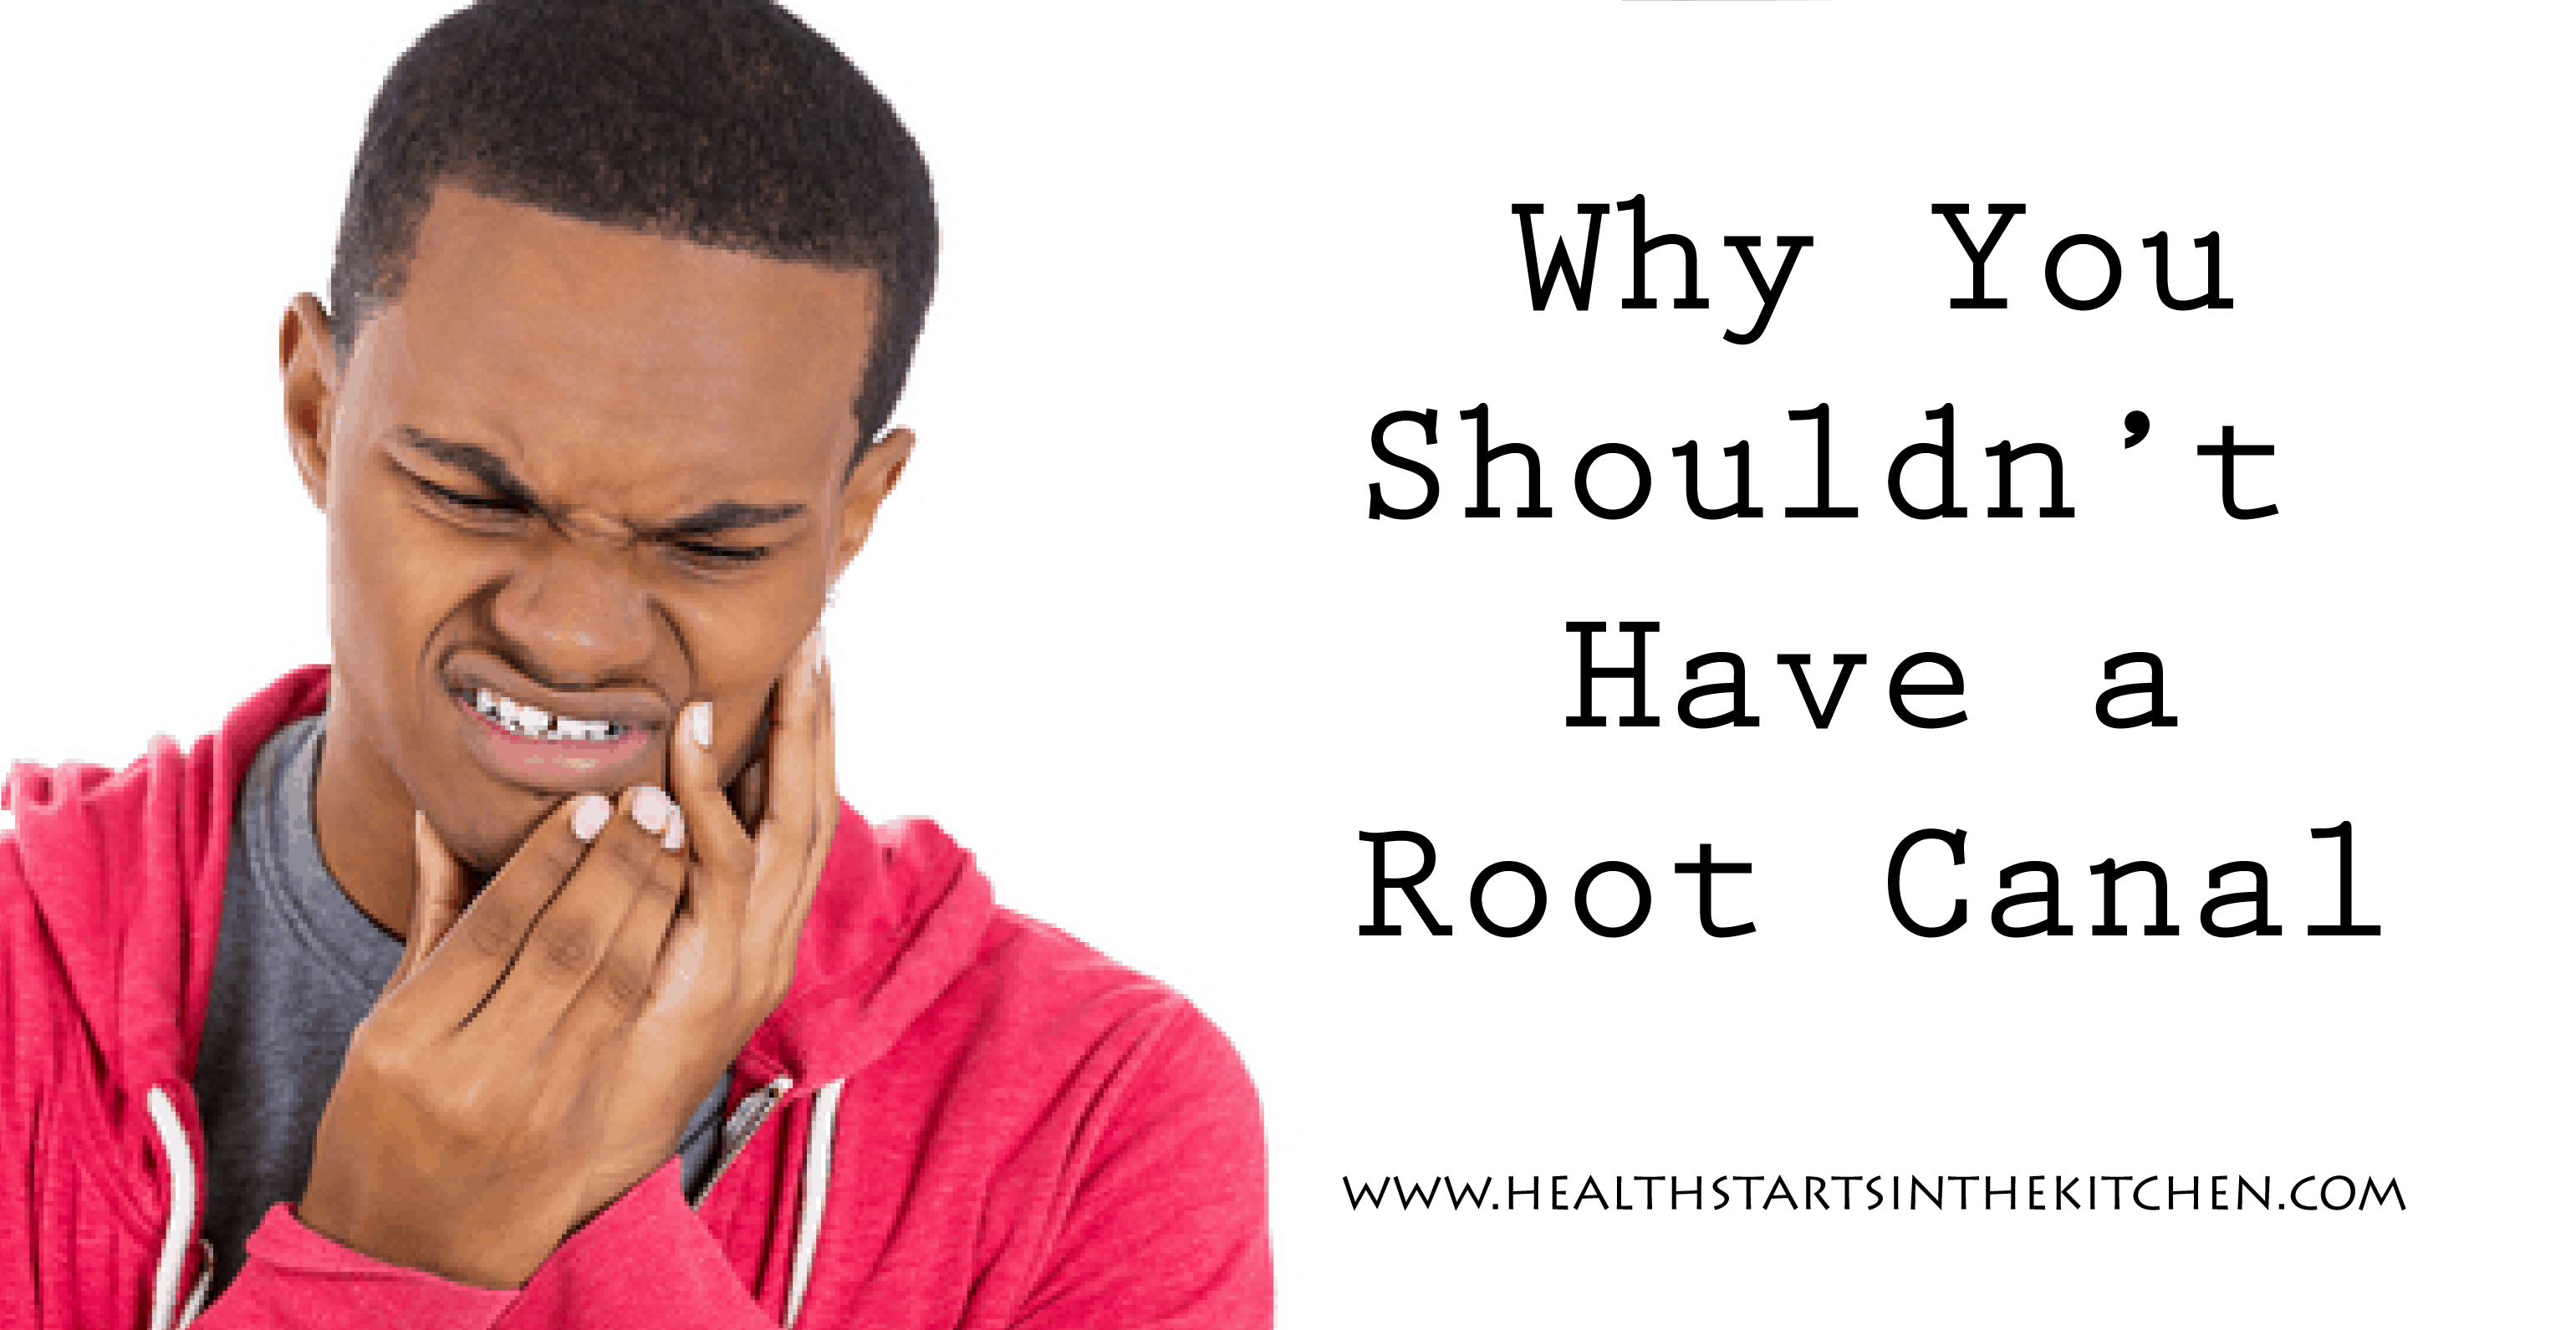 Why and How to Say No to an Unnecessary Root Canal Procedure